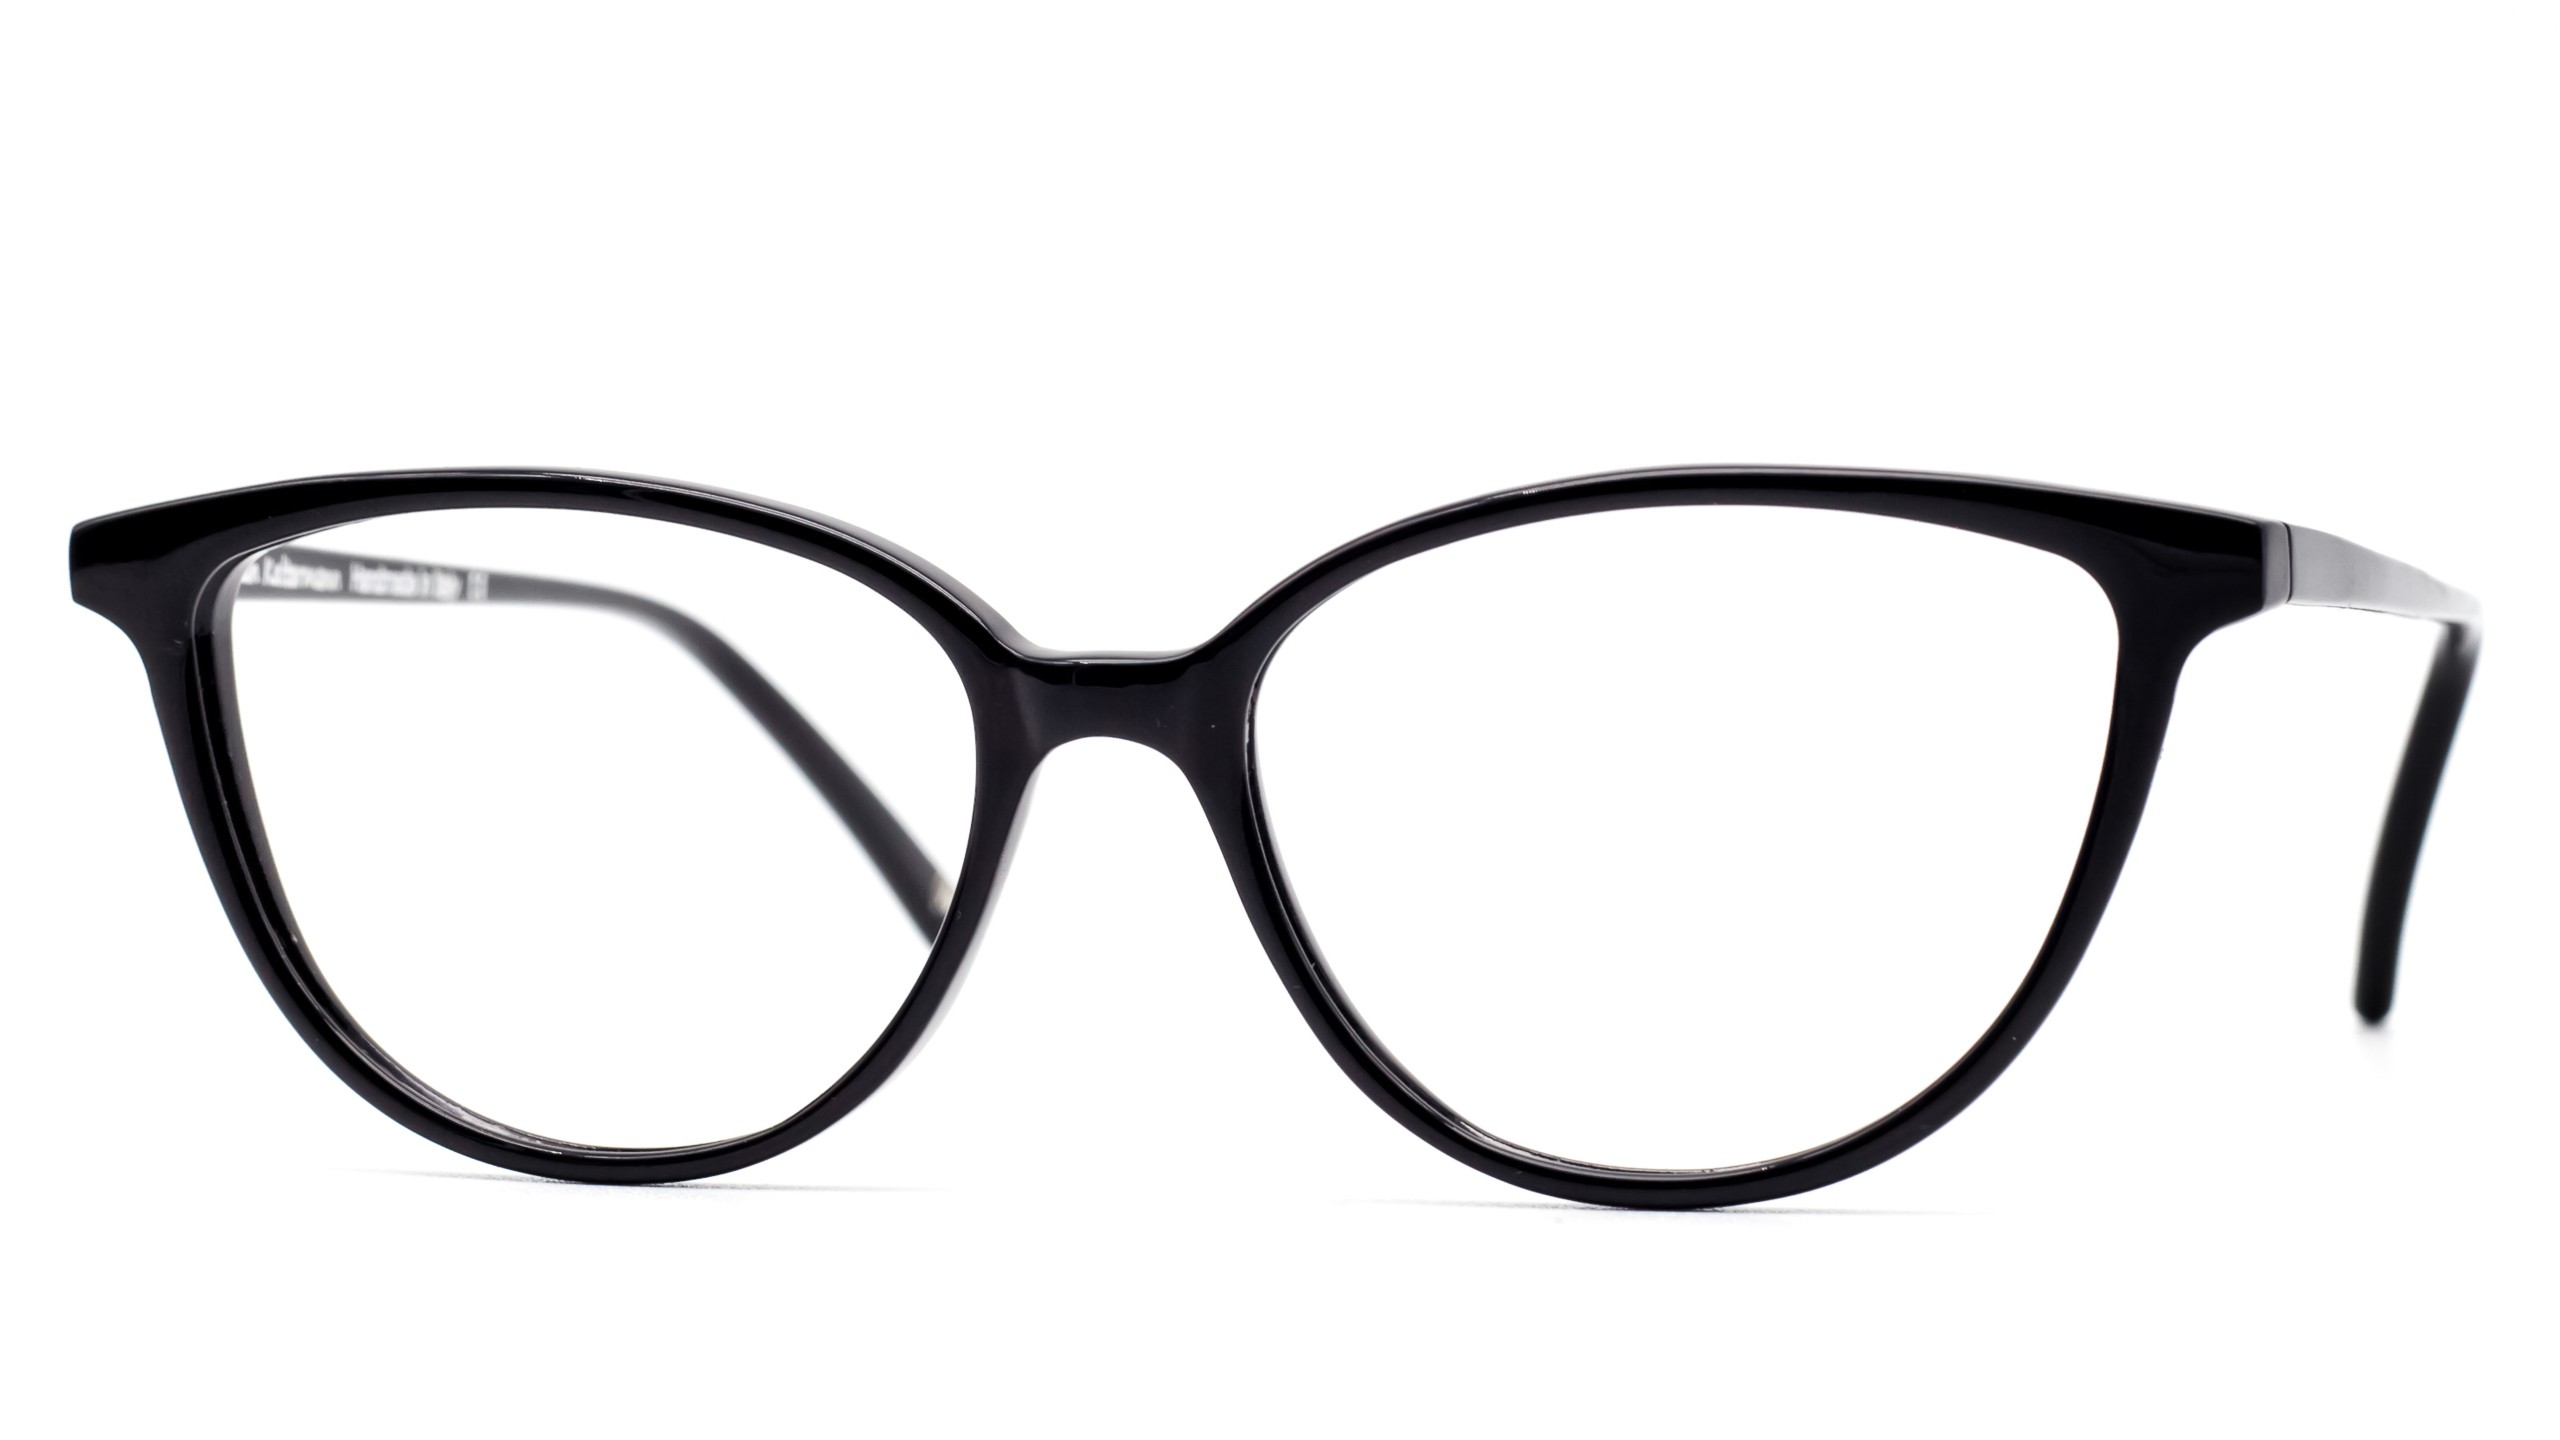 eyeglasses-Nathan-Kaltermann-made-in-Italy-Kate-C01-Vista2